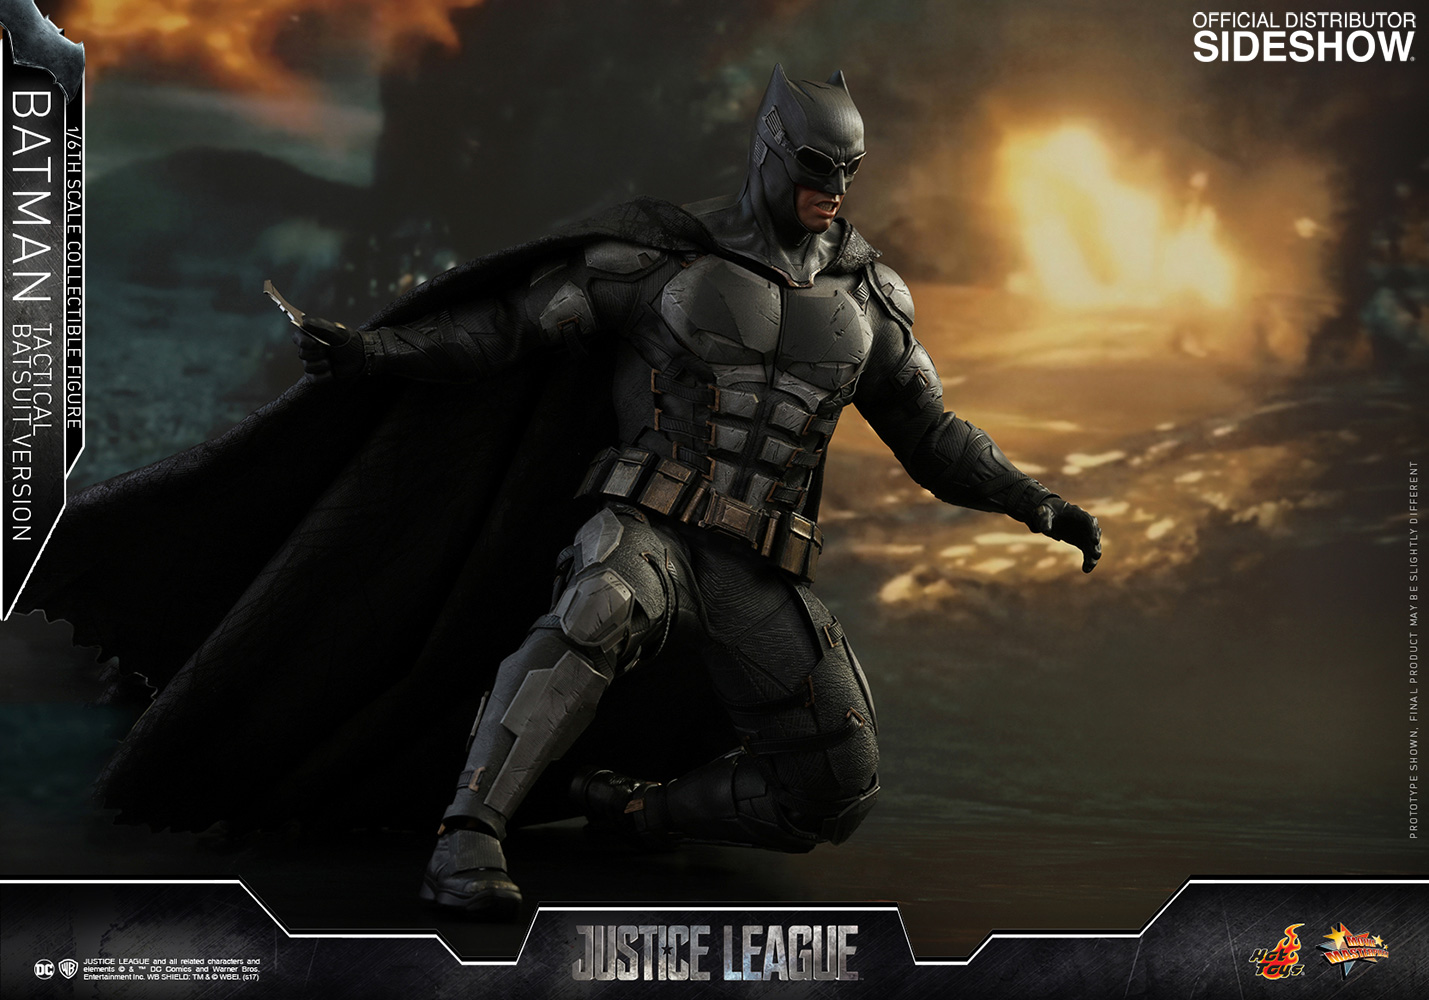 Justice League Mother 2017 Box